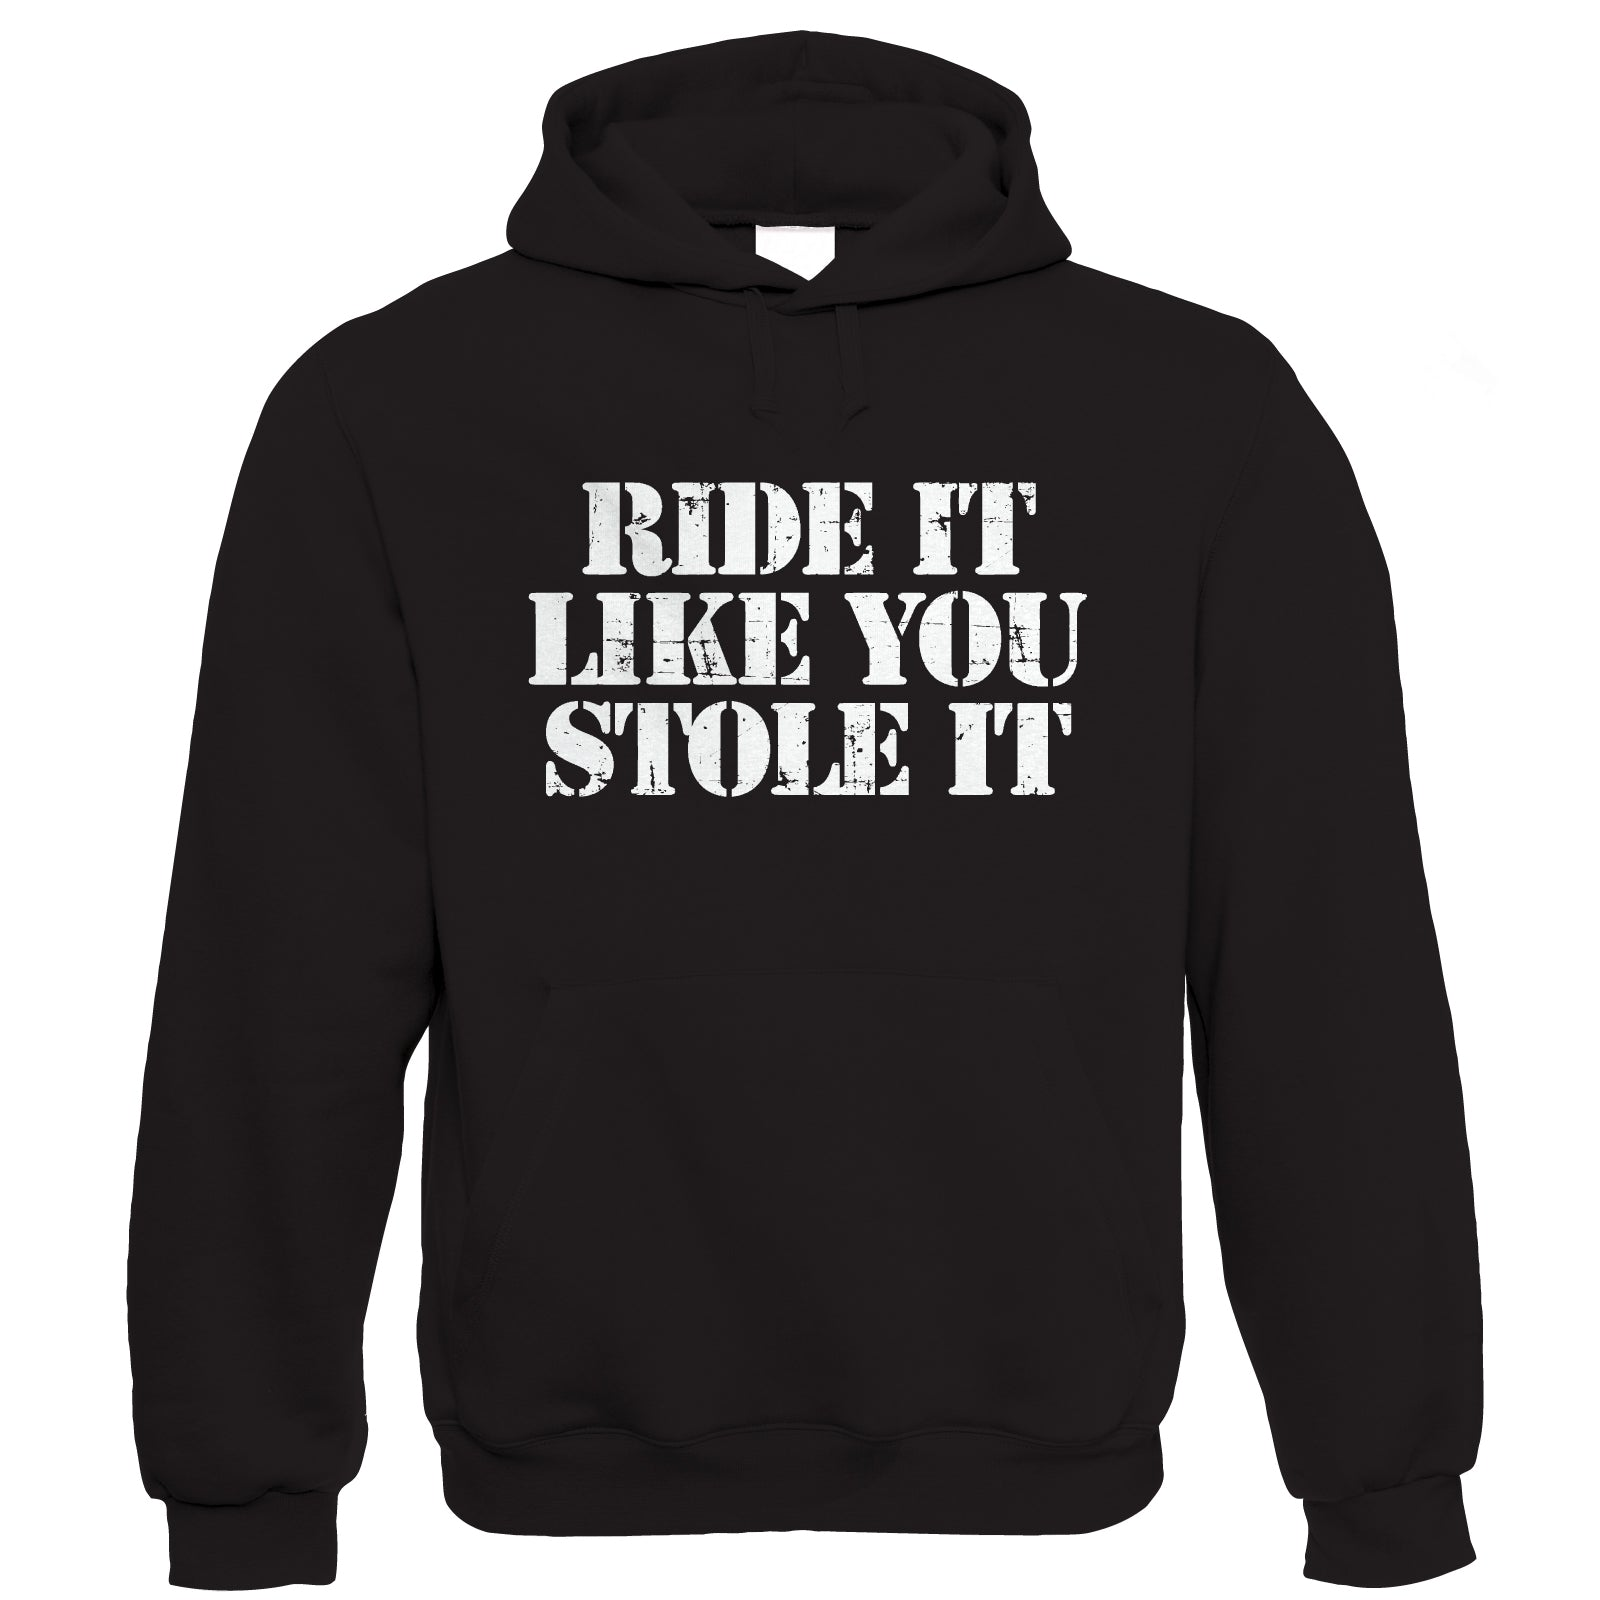 Ride It Like You Stole It, Mens Funny Biker Hoodie | Motorbike Racing Racer Enthusiast Motorcycle Club Chopper Cafe Racer Superbike Gentleman Biker | Cool Birthday Christmas Gift Him Dad Husband Son